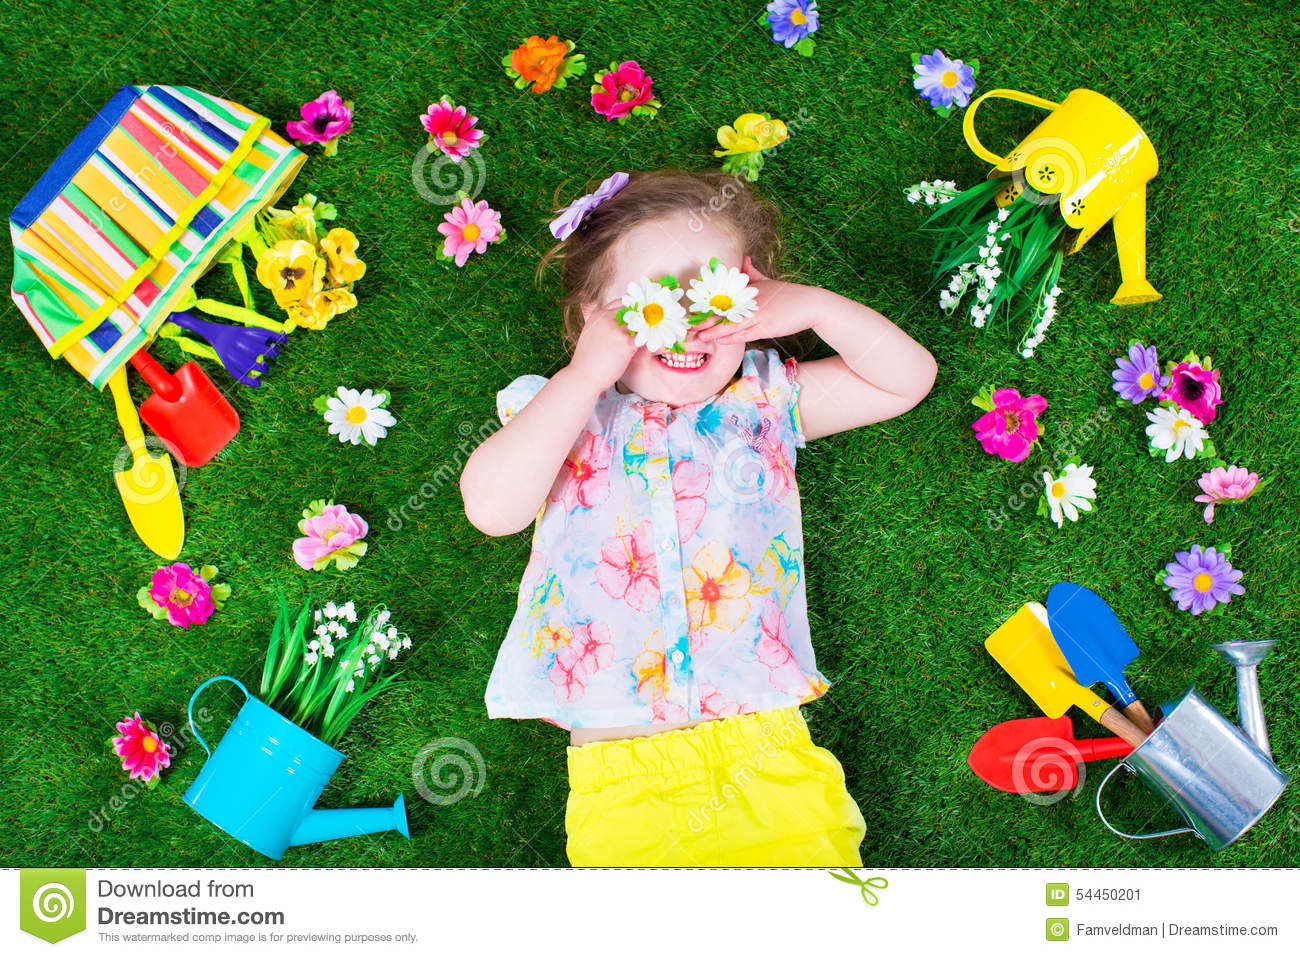 Kids On A Lawn With Garden Tools Stock Image